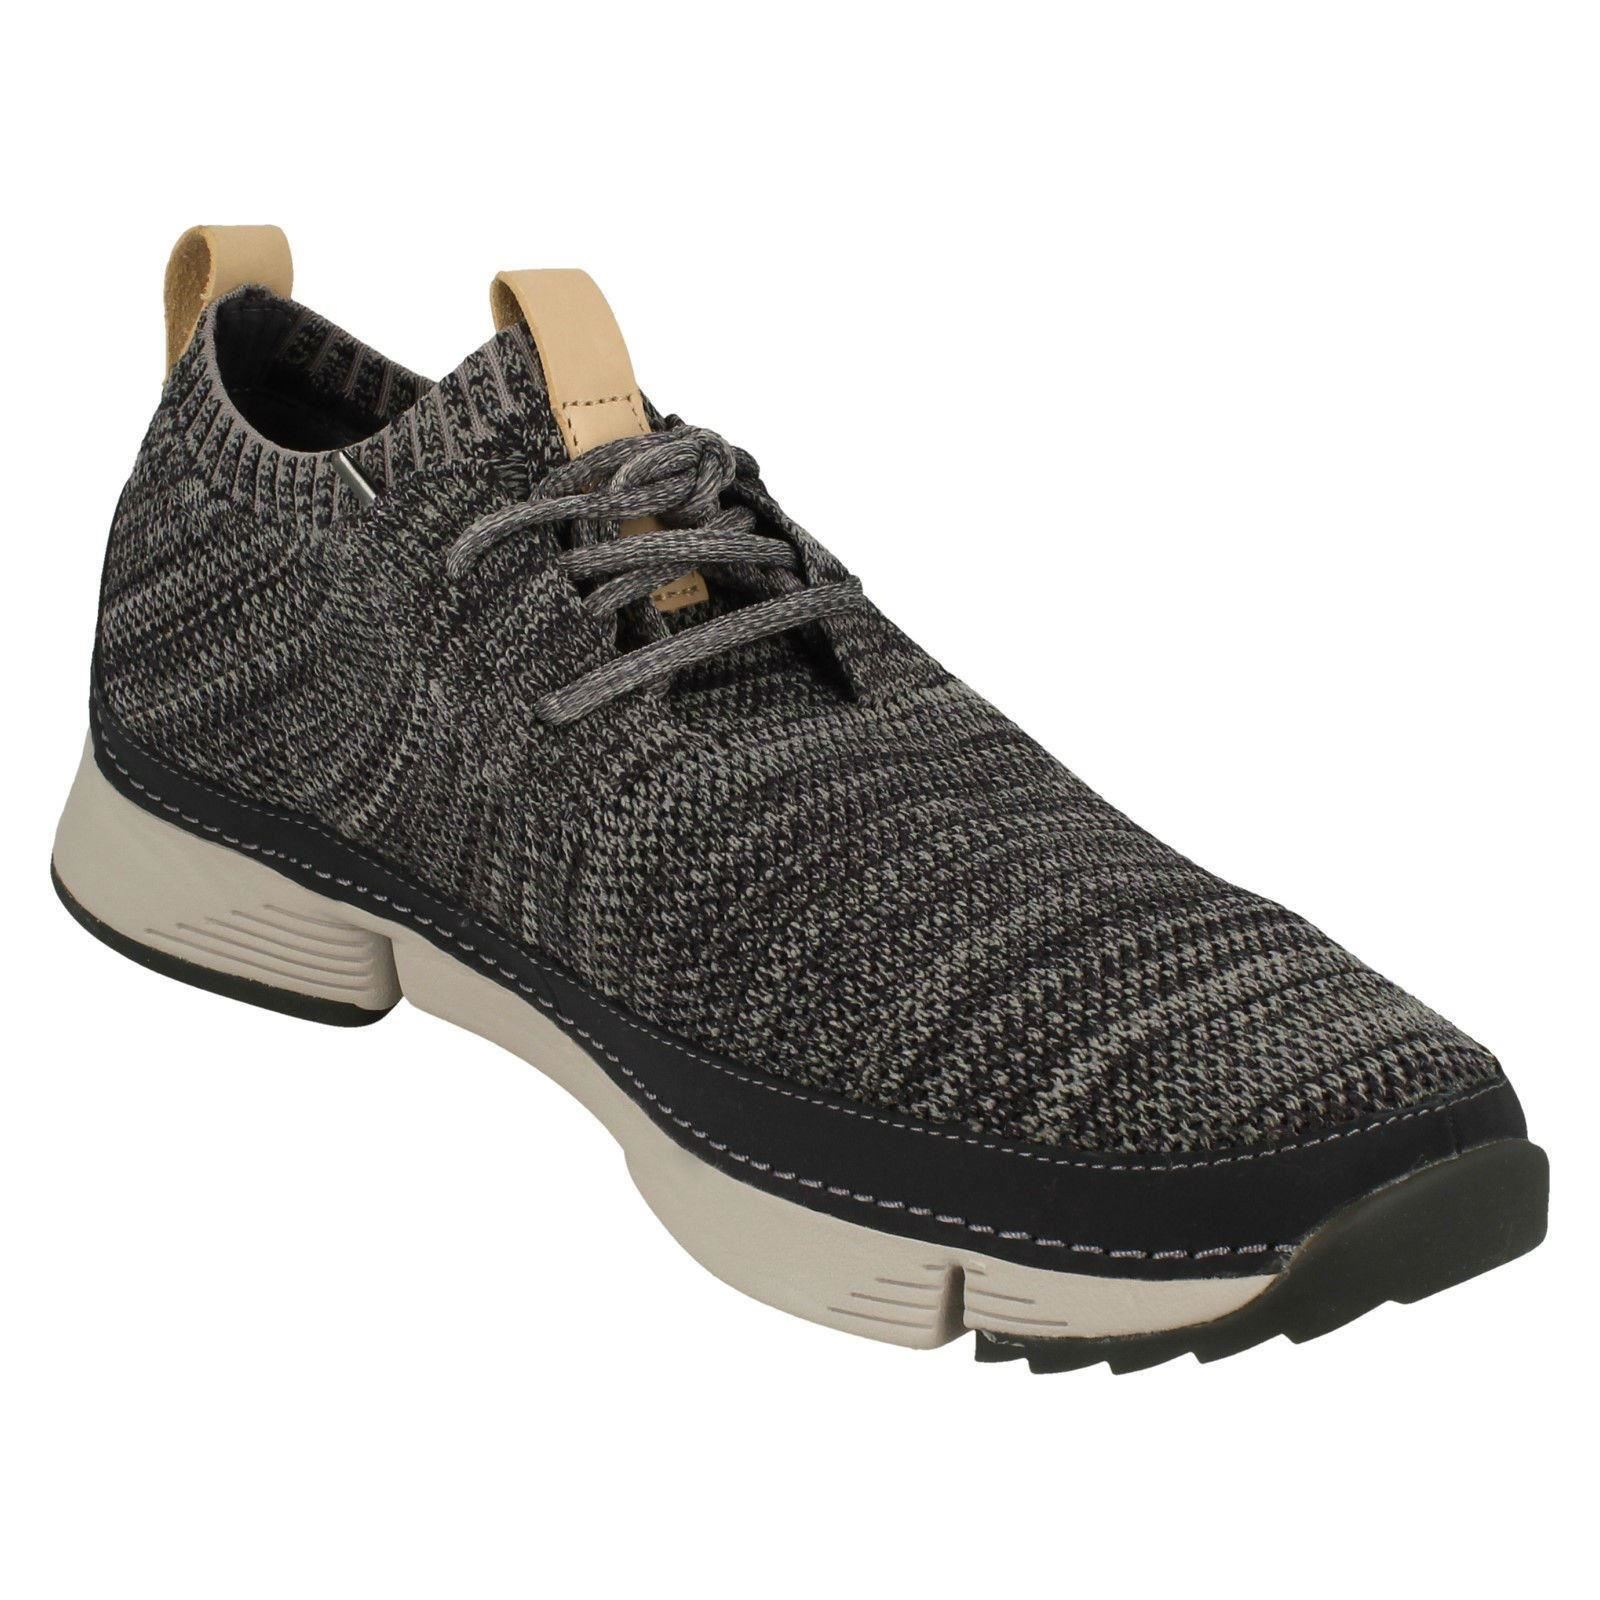 Mens-Clarks-Casual-Lace-Up-Trainers-Tri-Native thumbnail 4